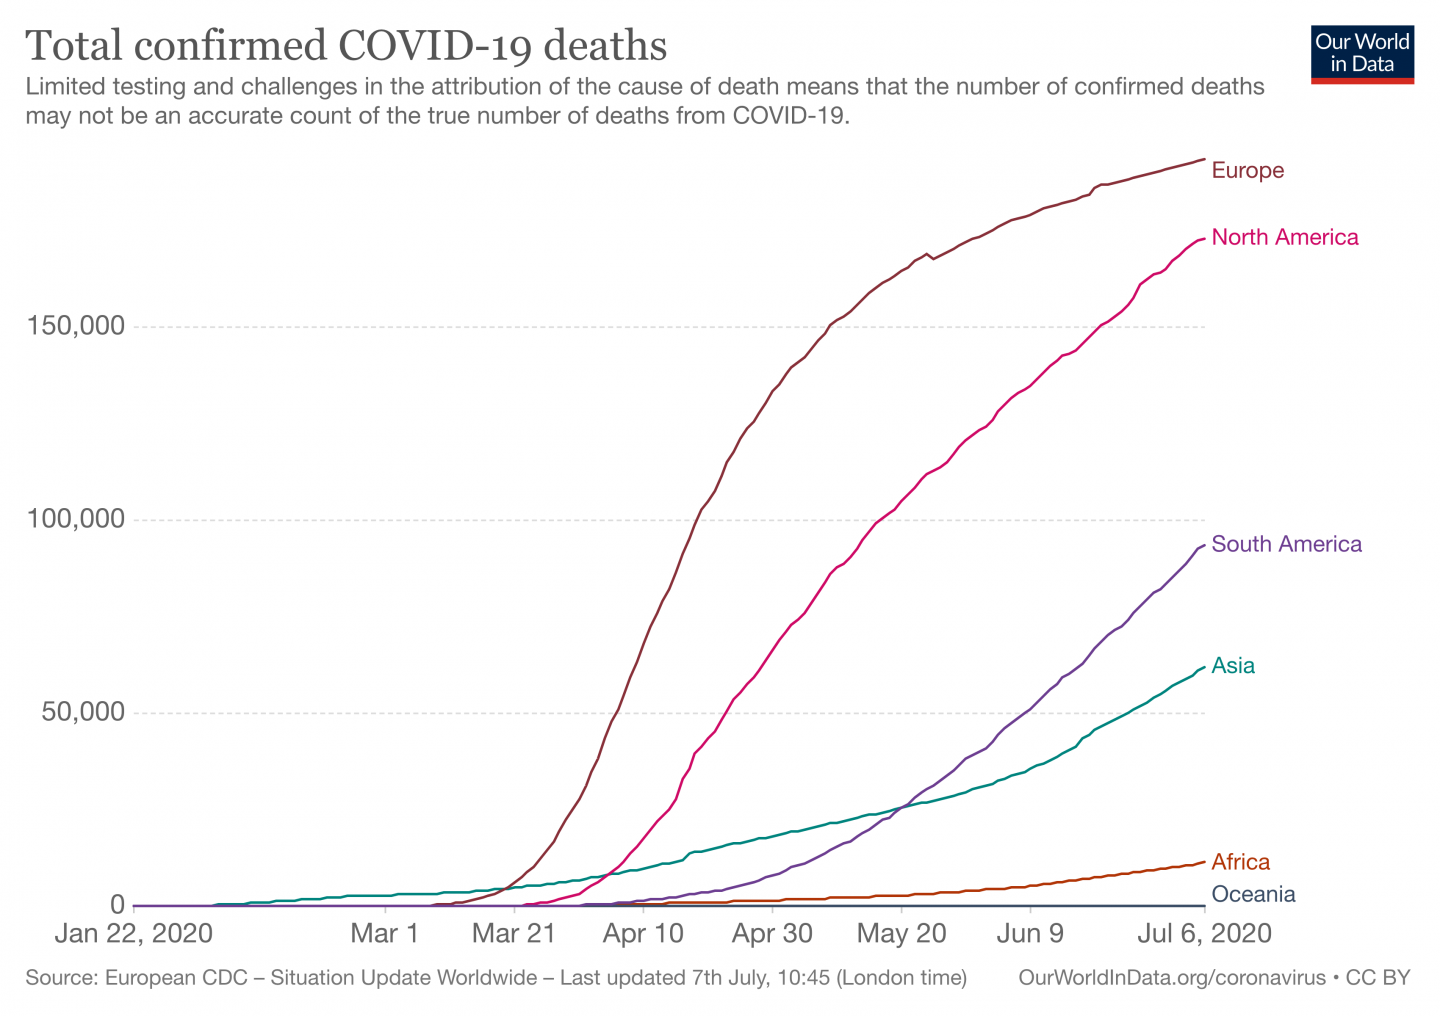 line graph showing total confirmed COVID-19 deaths by region. Europe and North America far surpass the others.